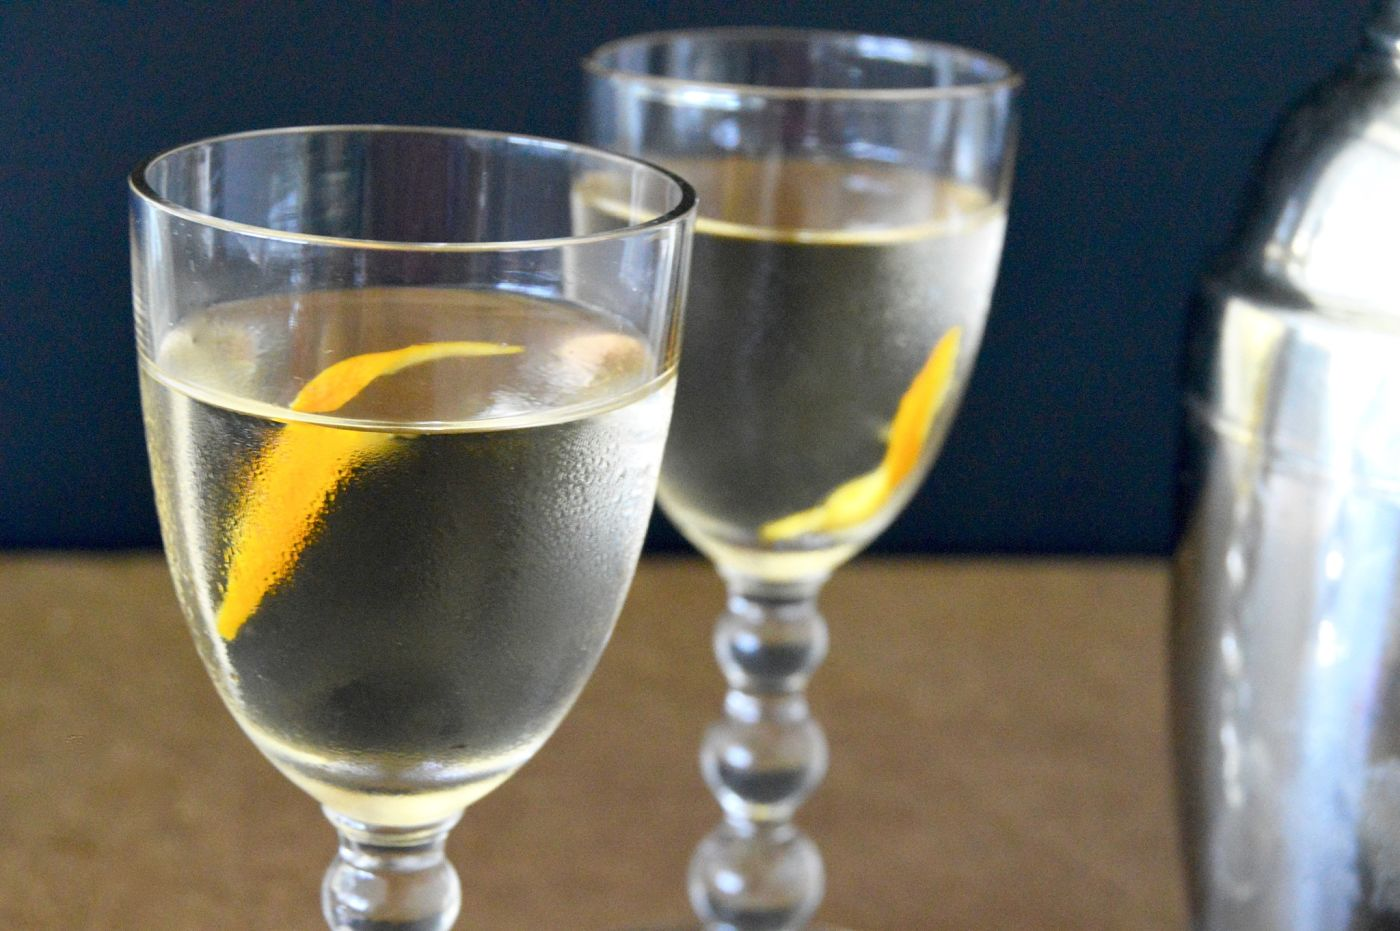 This Sakitini - Sake Martini is a refreshing, thirst quenching cocktail that is great with any light dish you are serving or perfect alone after a long hot day in the sun! https://www.westviamidwest.com